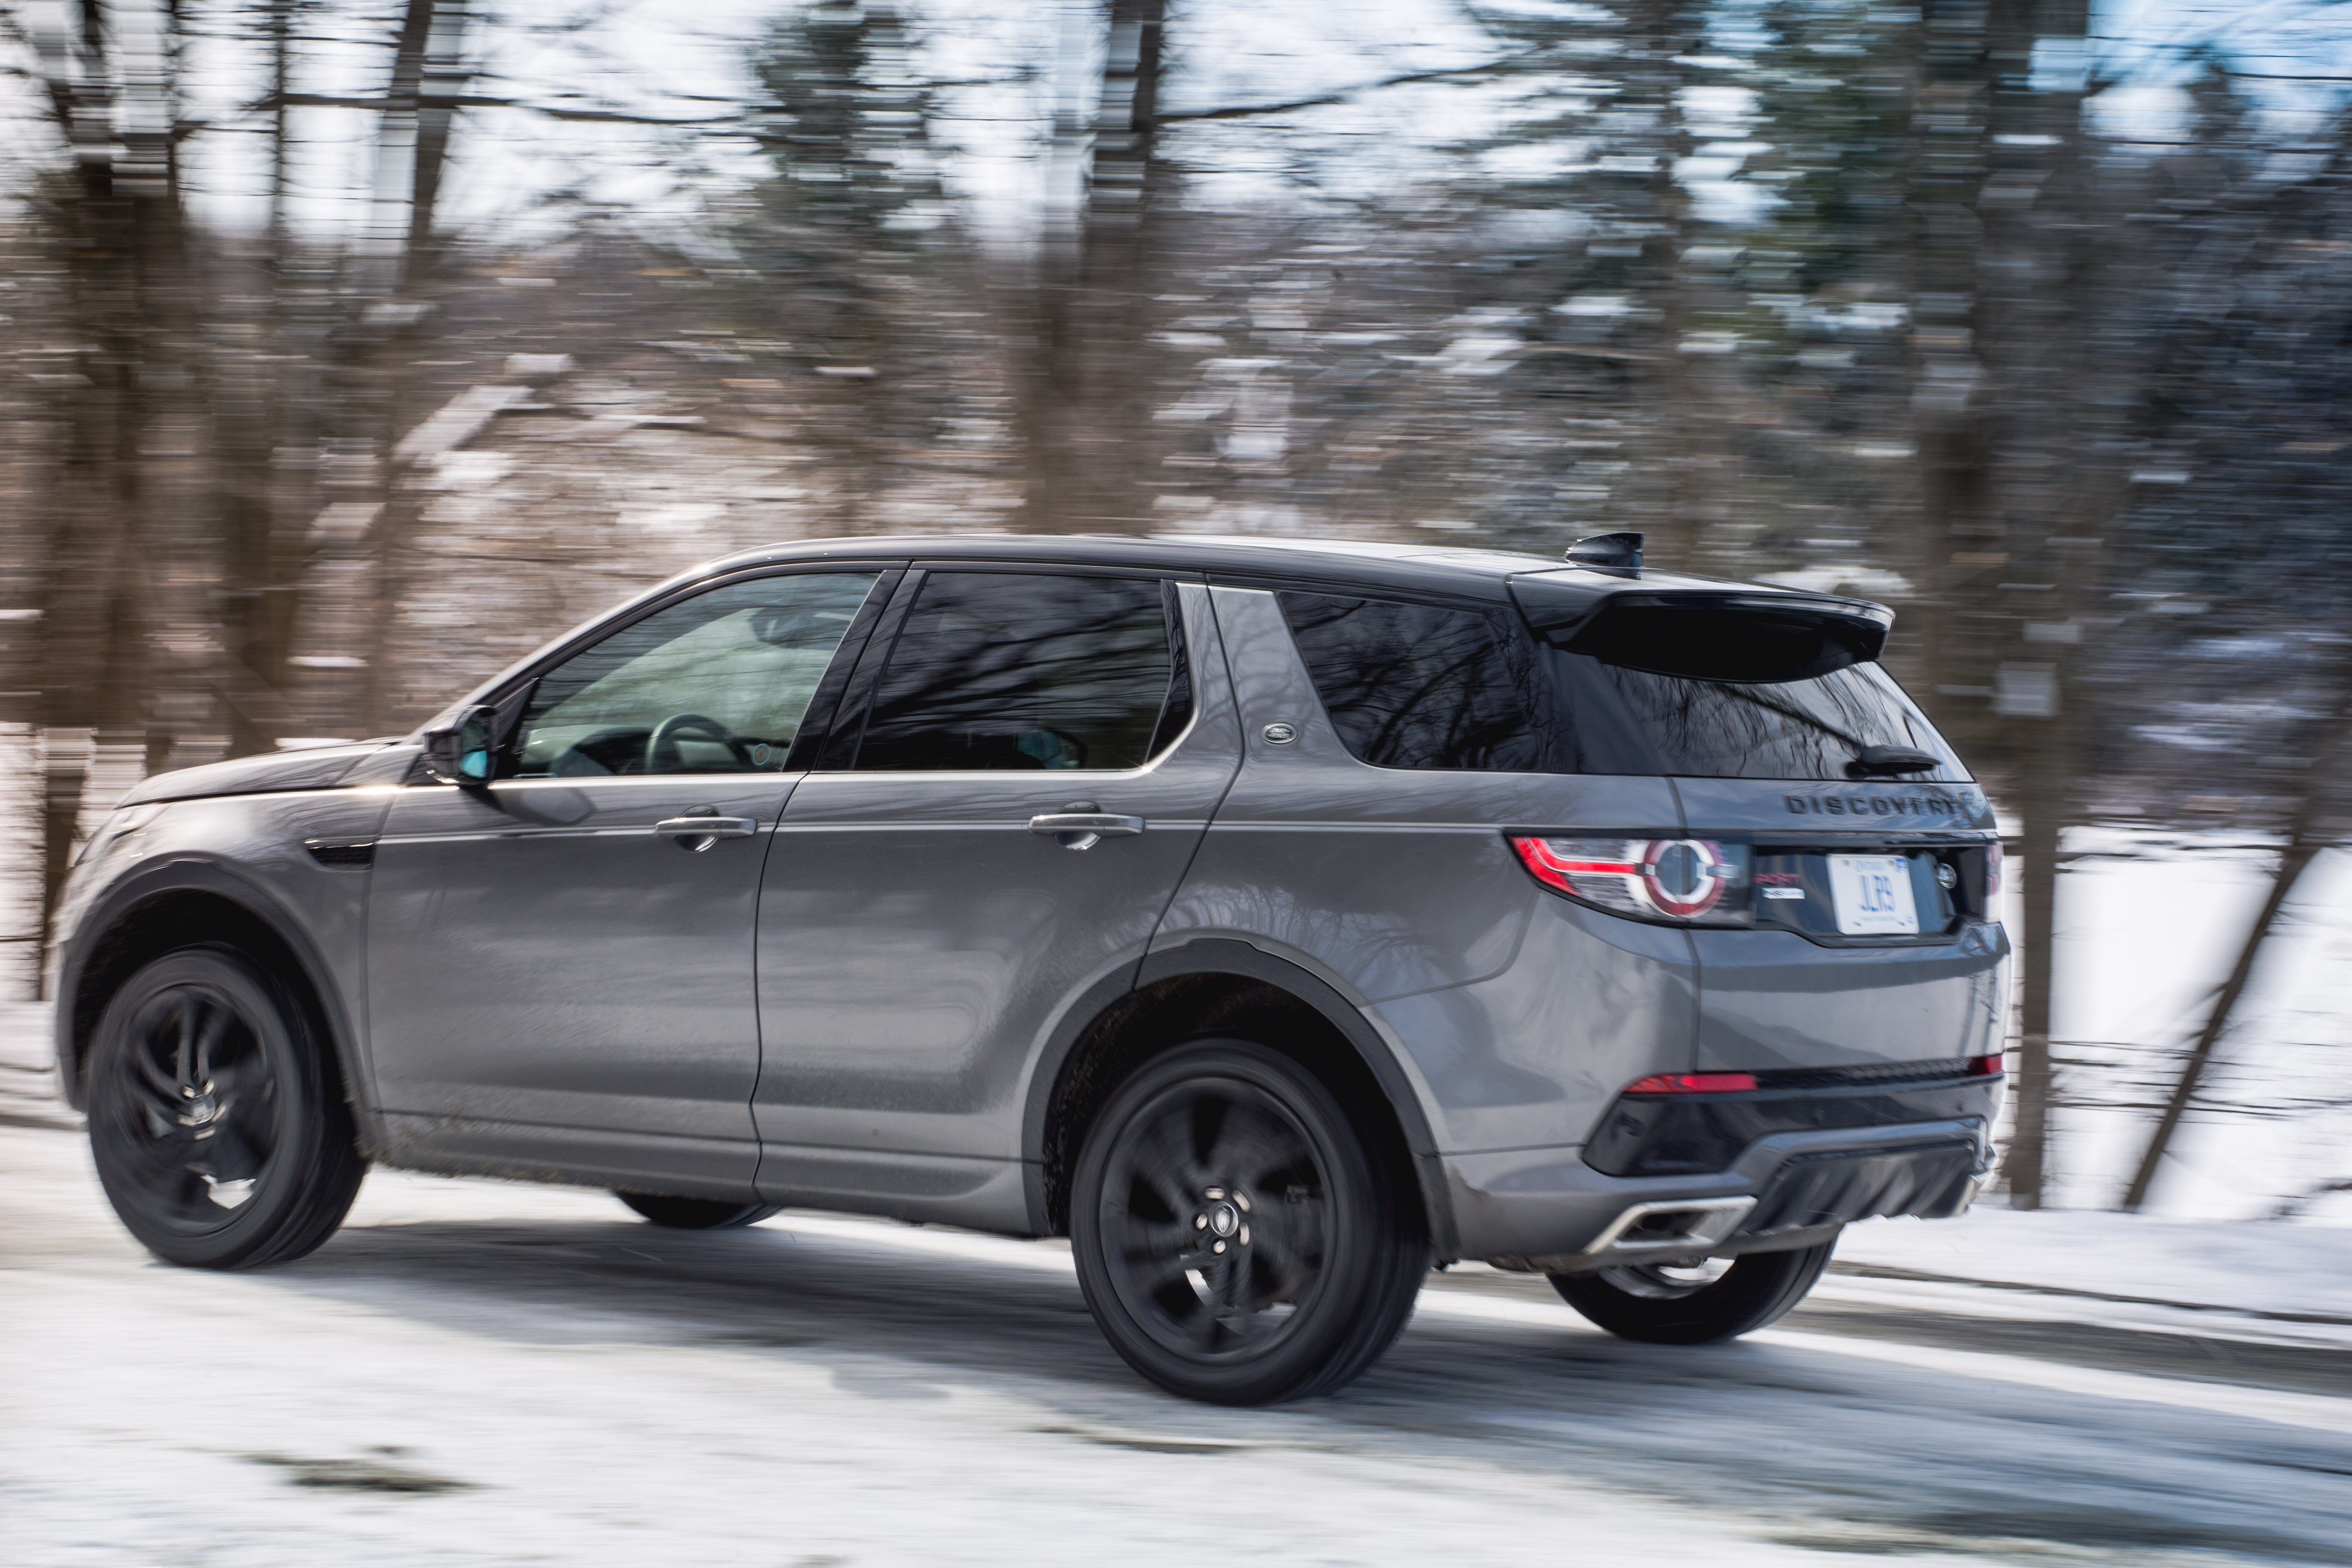 2017 land rover discovery sport my how you 39 ve changed. Black Bedroom Furniture Sets. Home Design Ideas